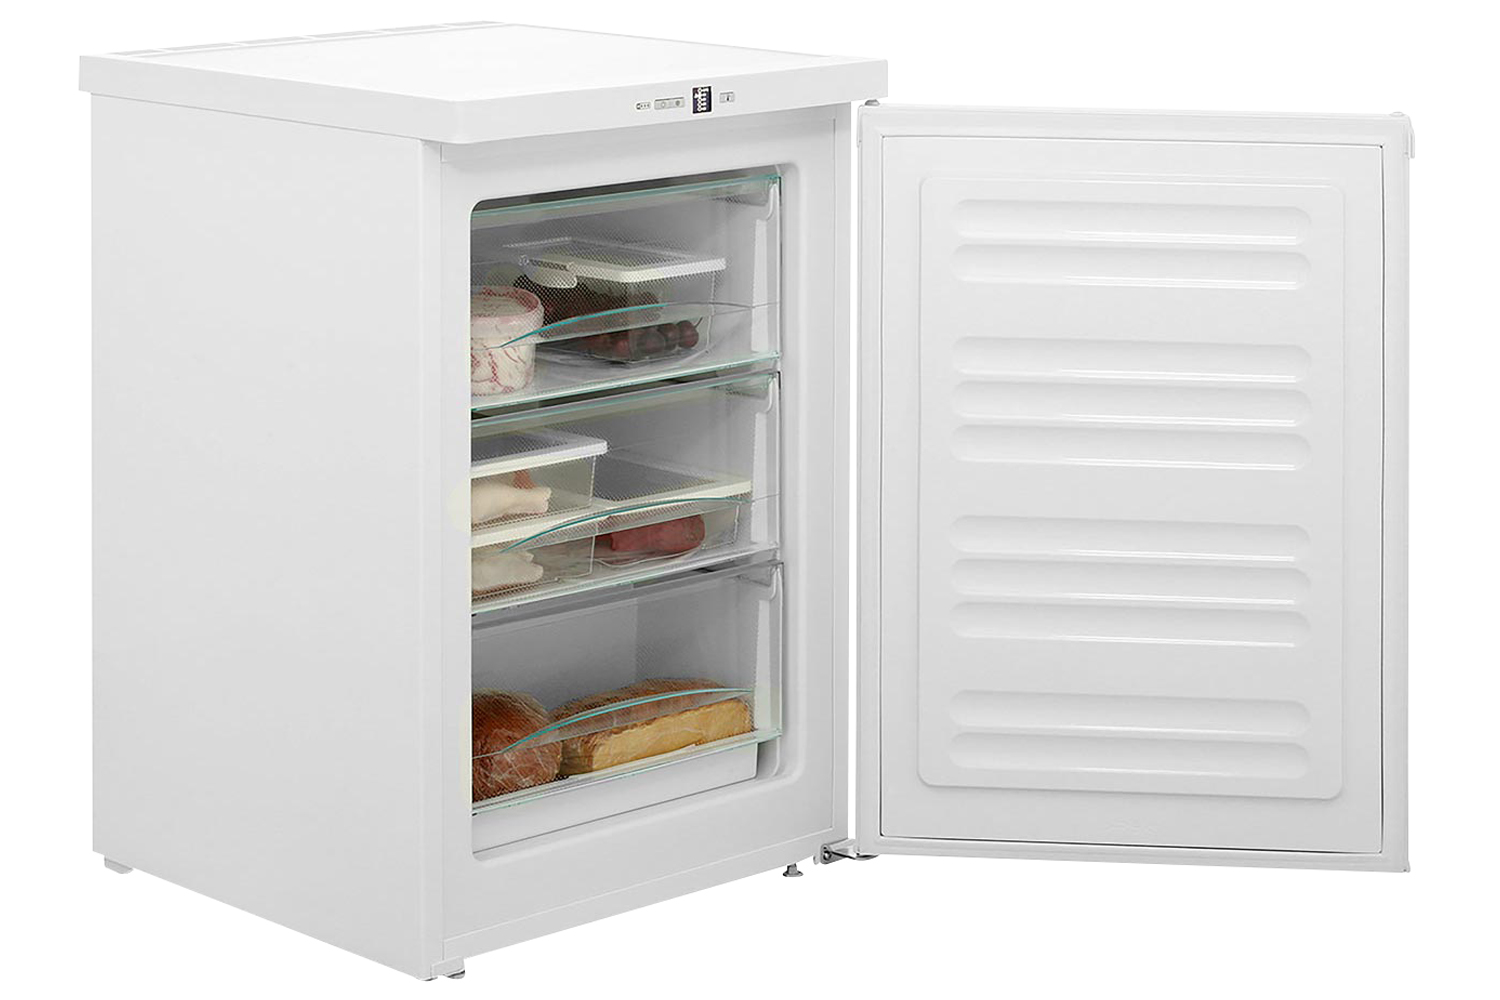 Gefrierschrank Miele Miele F 12011 S 1 Freestanding Freezer For Increased Versatility Thanks To Three Freezer Drawers And Varioroom